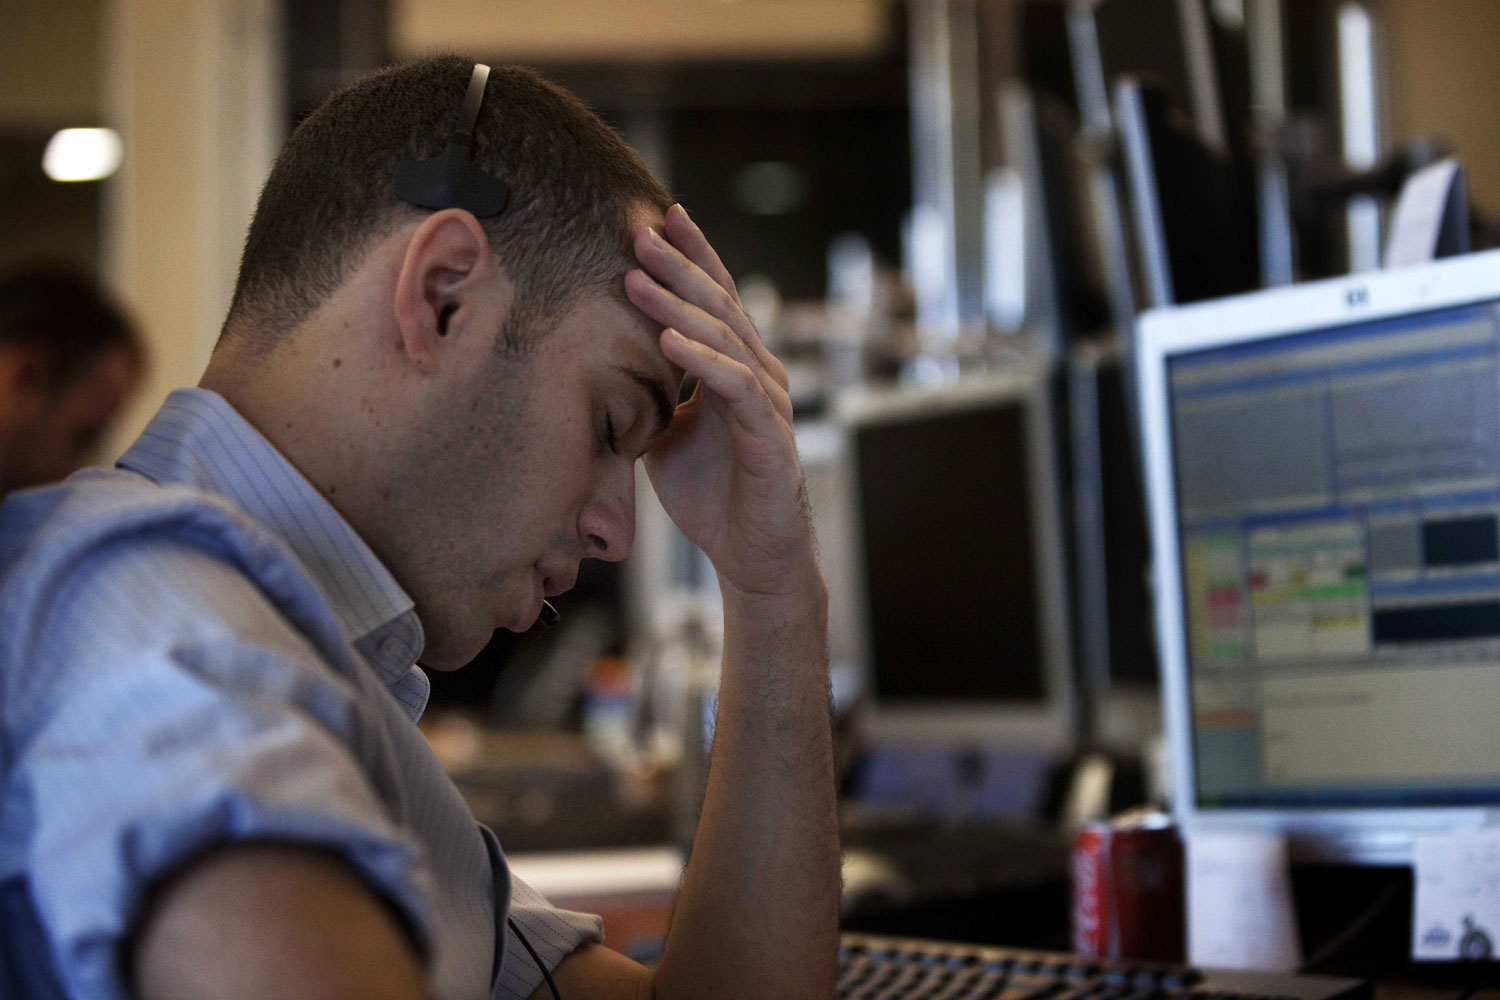 Israeli stock market traders work at their office in the Meitav investment house in Tel Aviv, August 8, 2011 a day after key Israeli stock indices fell around seven percent and trading on the Tel Aviv stock exchange was temporarily halted after news of a US credit rating downgrade.